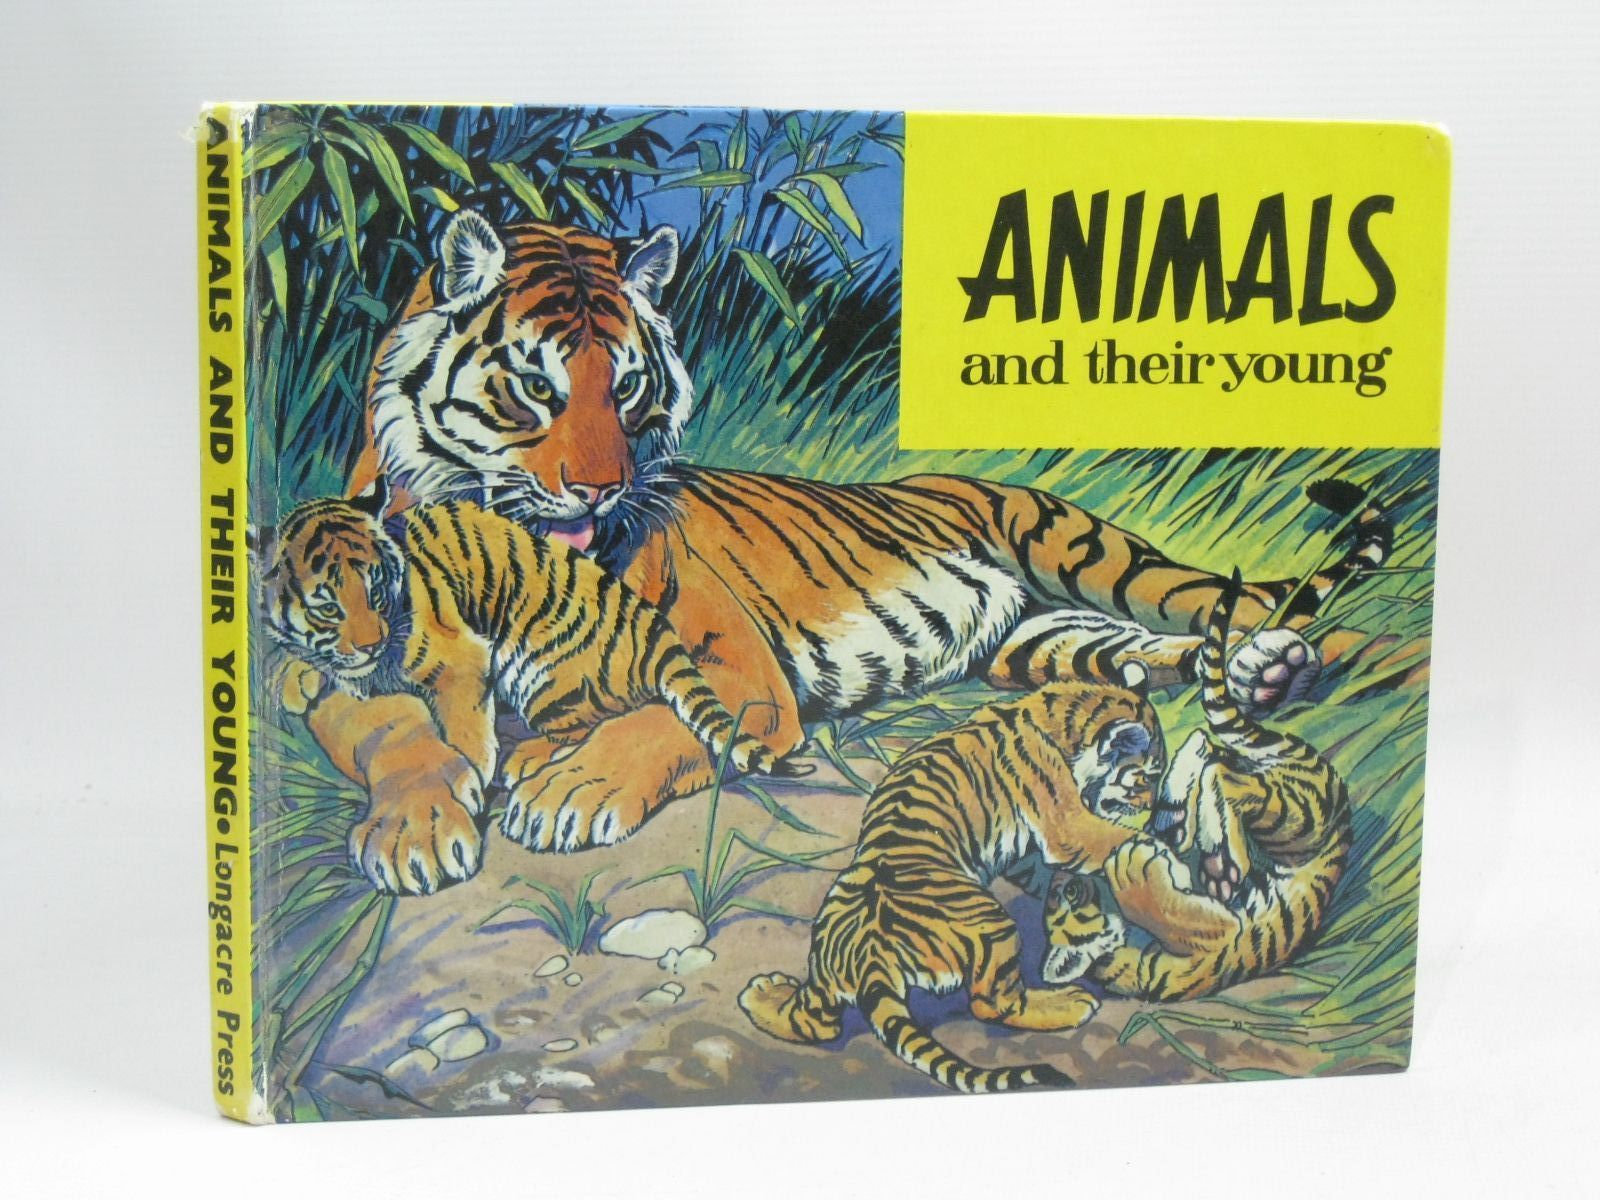 Photo of ANIMALS AND THEIR YOUNG published by Longacre Press Ltd. (STOCK CODE: 1405849)  for sale by Stella & Rose's Books